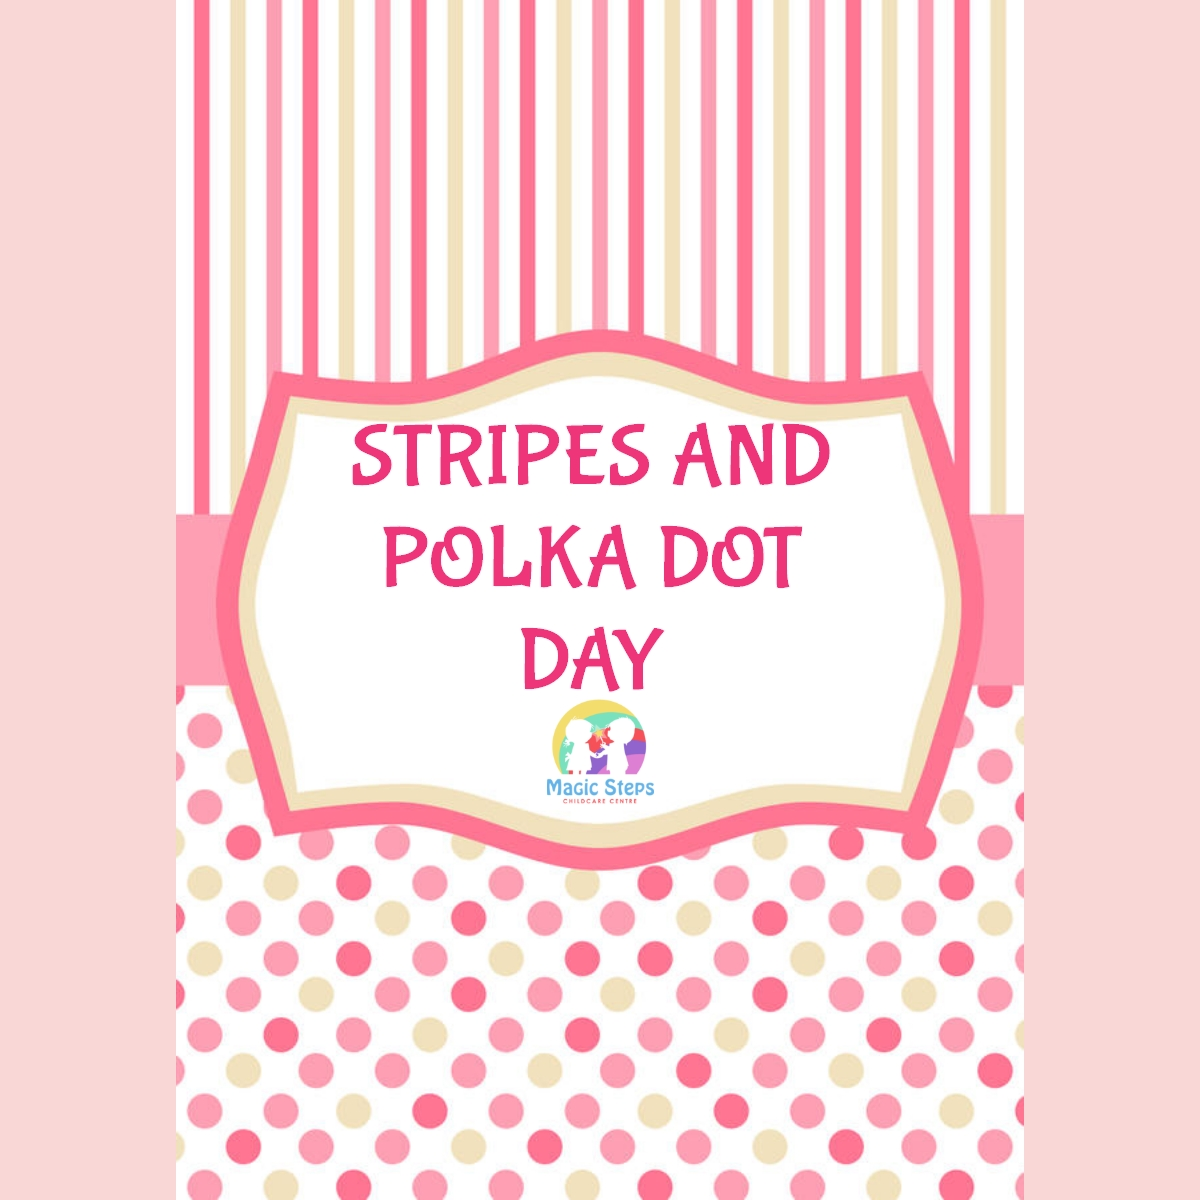 Stripes and Polka Dot Day- Wednesday 12th May